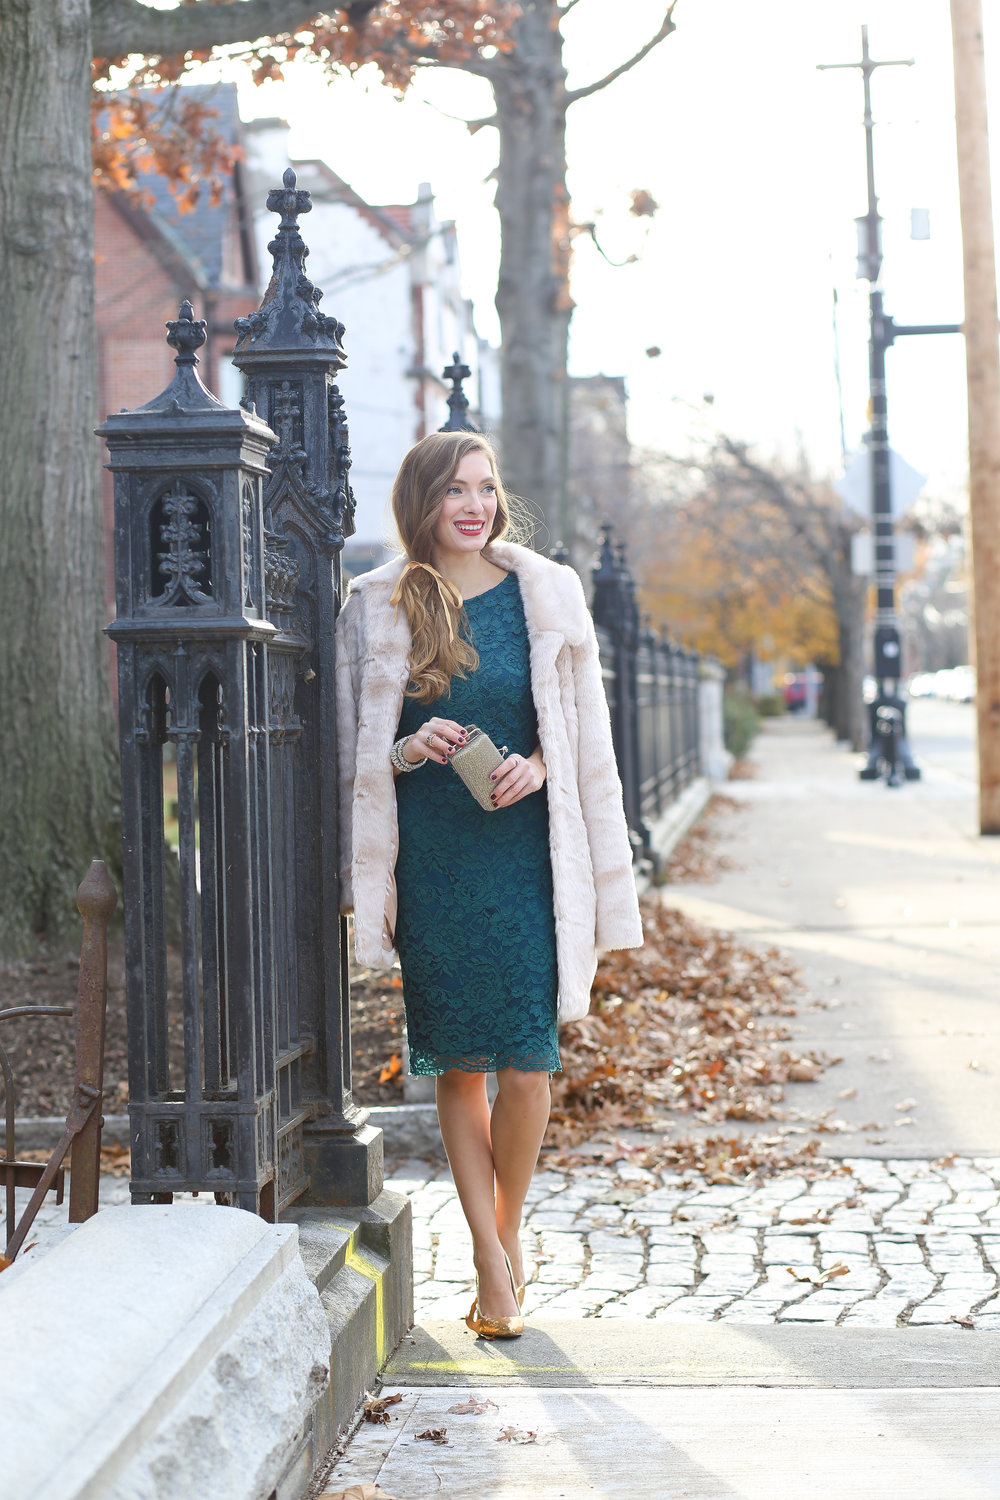 The Green Dress- Enchanting Elegance